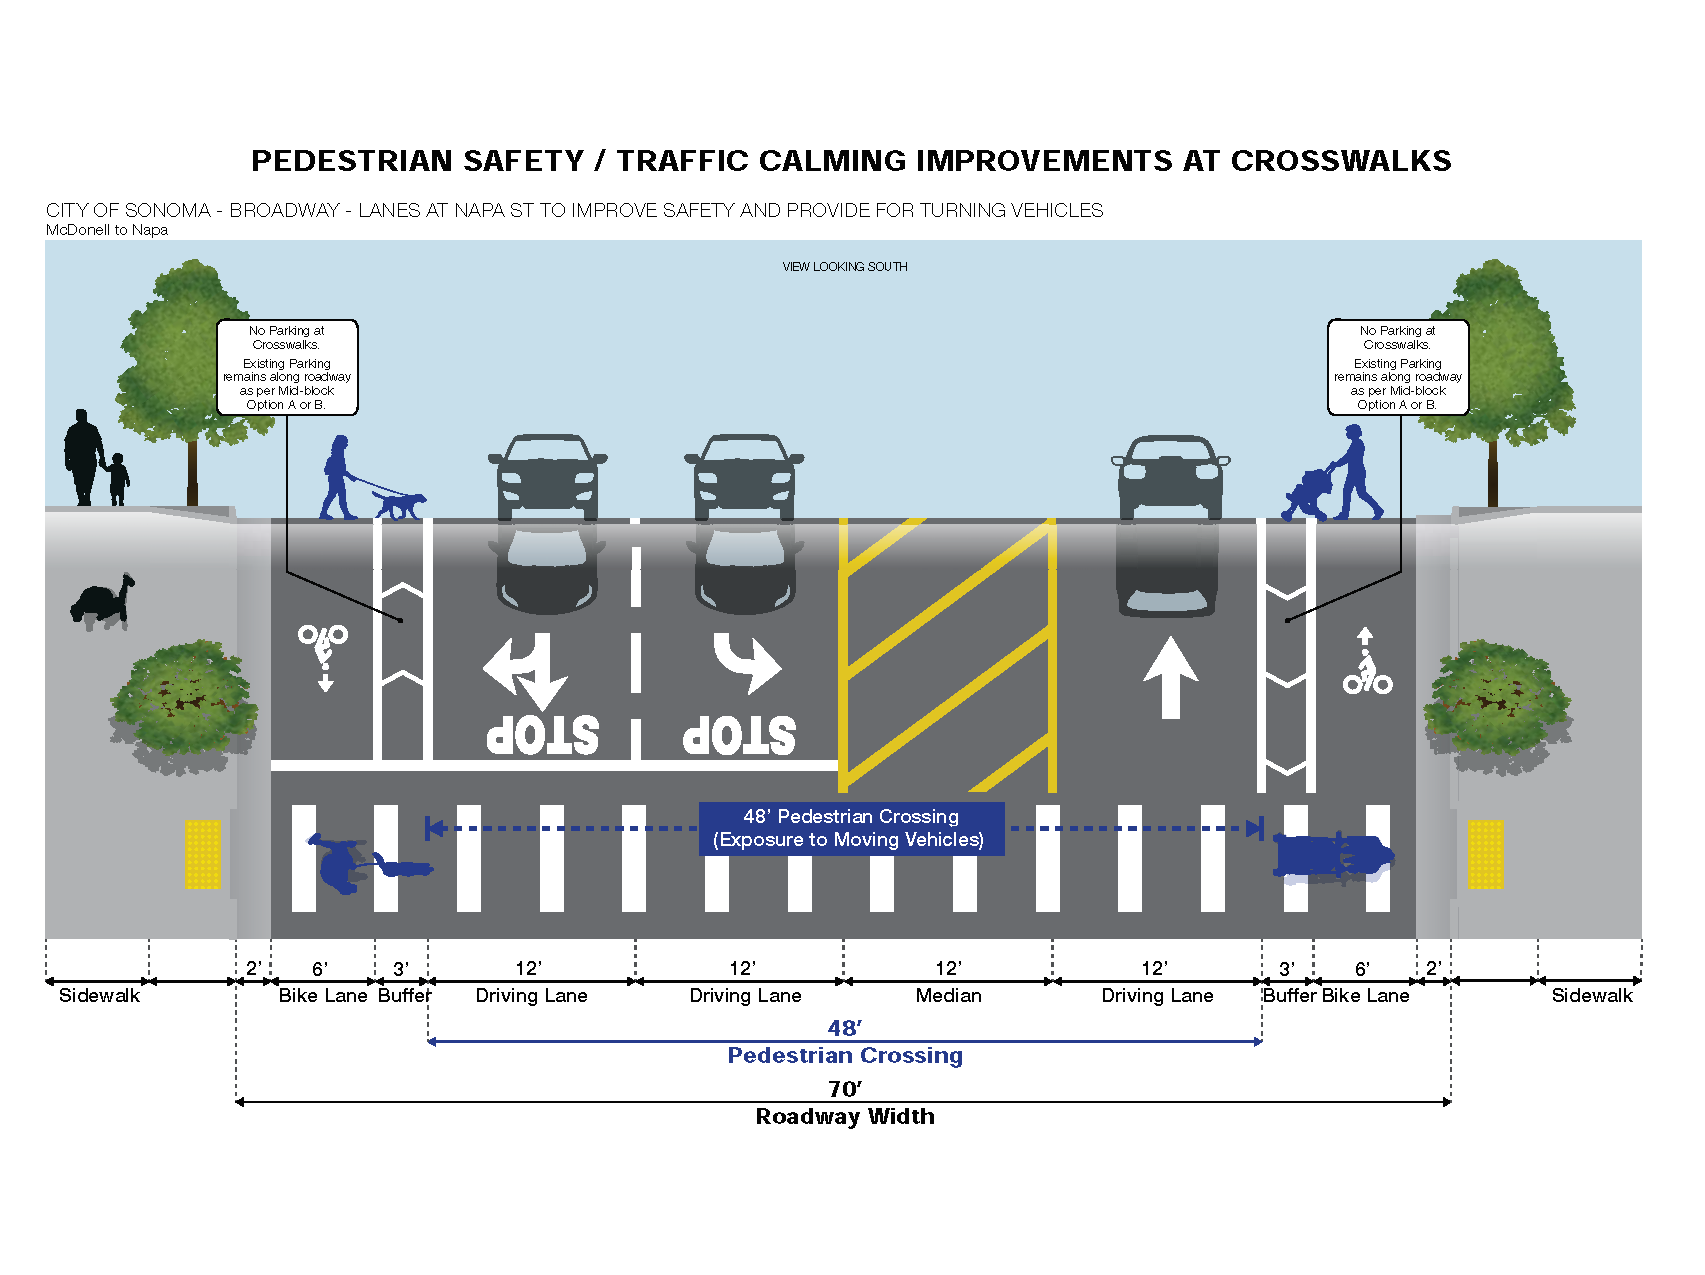 Broadway Reduced Lanes McDonell to Napa